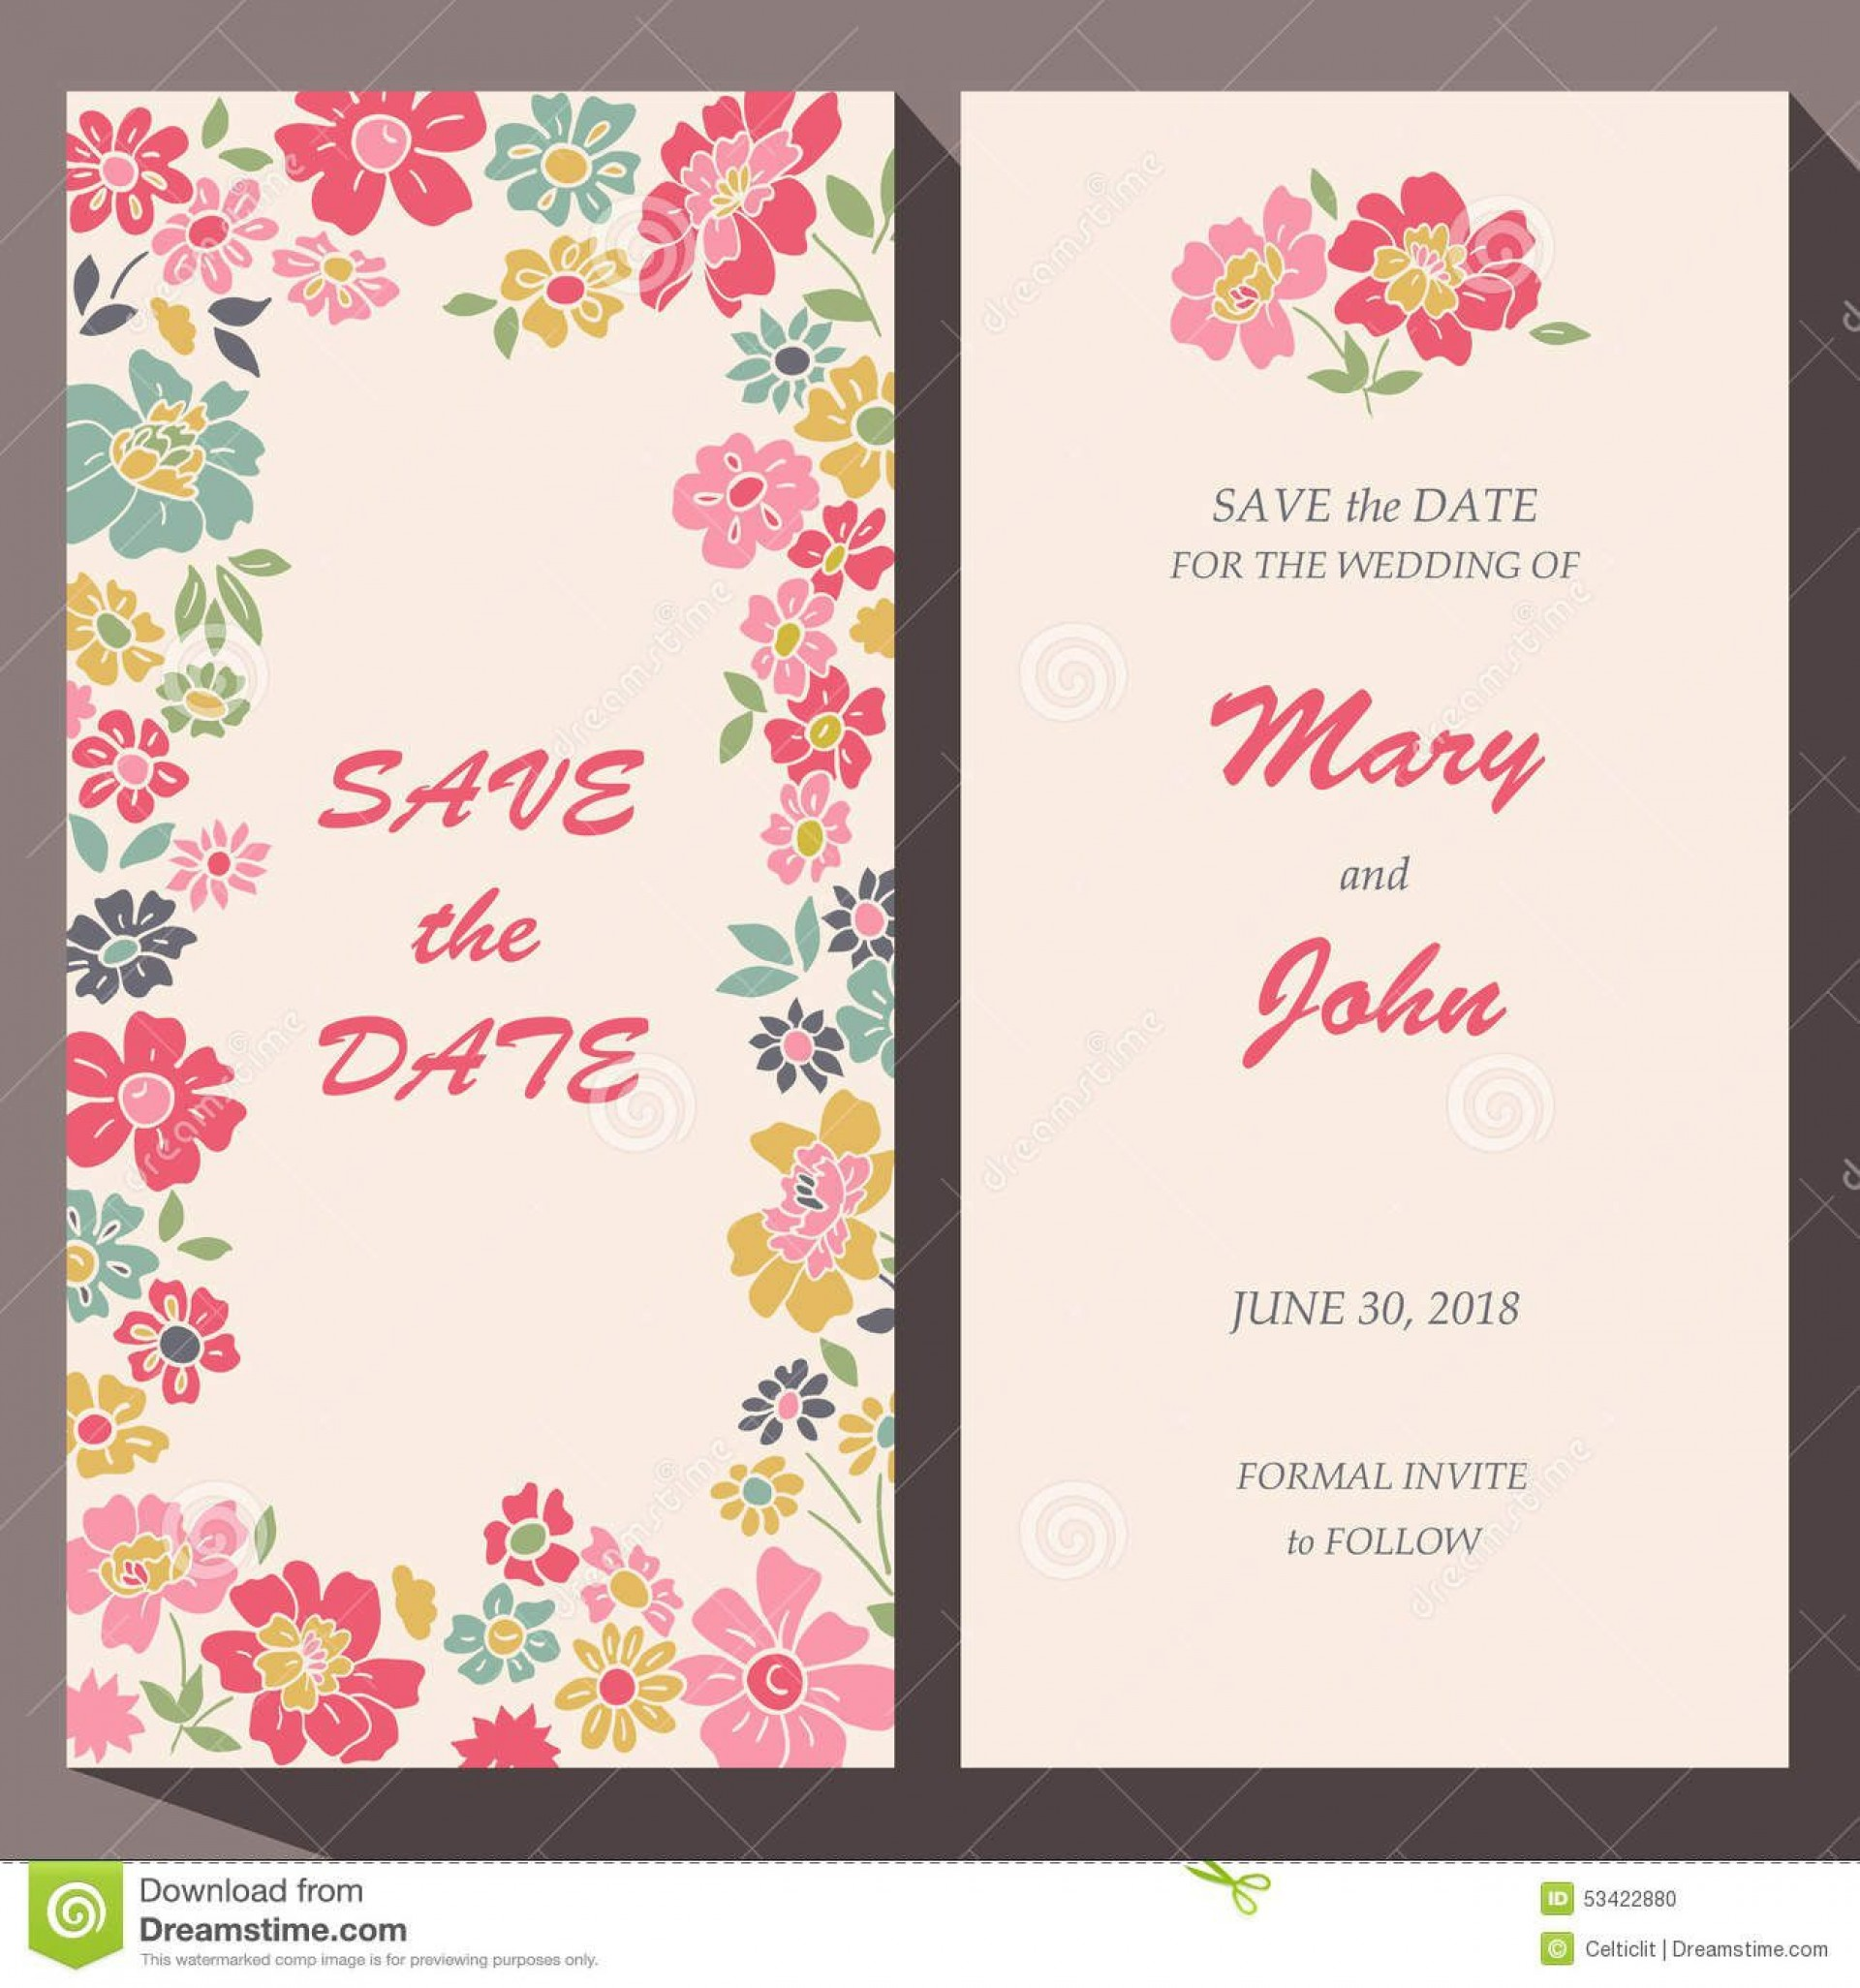 009 Awful Save The Date Birthday Card Template Design  Free Printable1920